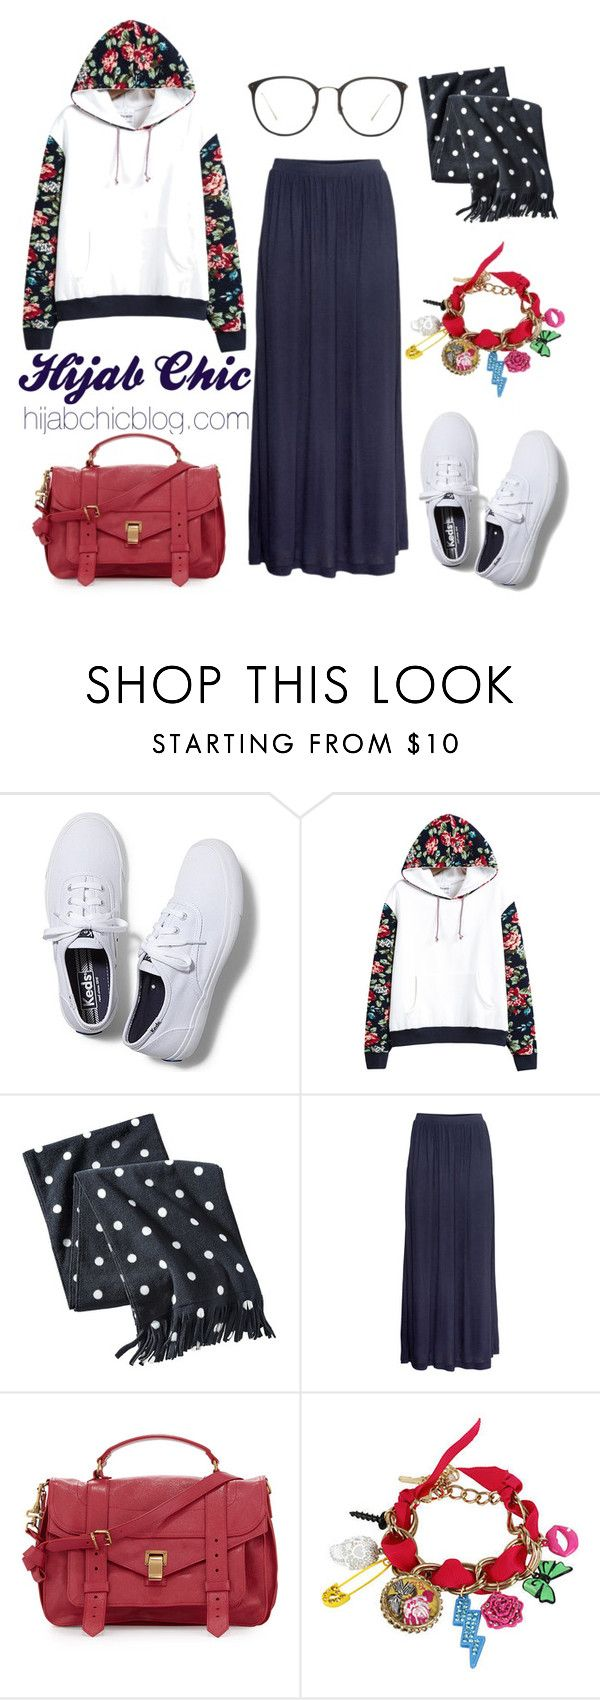 """""""Hijab Chic"""" by hijab-chic on Polyvore featuring Keds, Merona, H&M, Proenza Schouler, Betsey Johnson and Linda Farrow"""